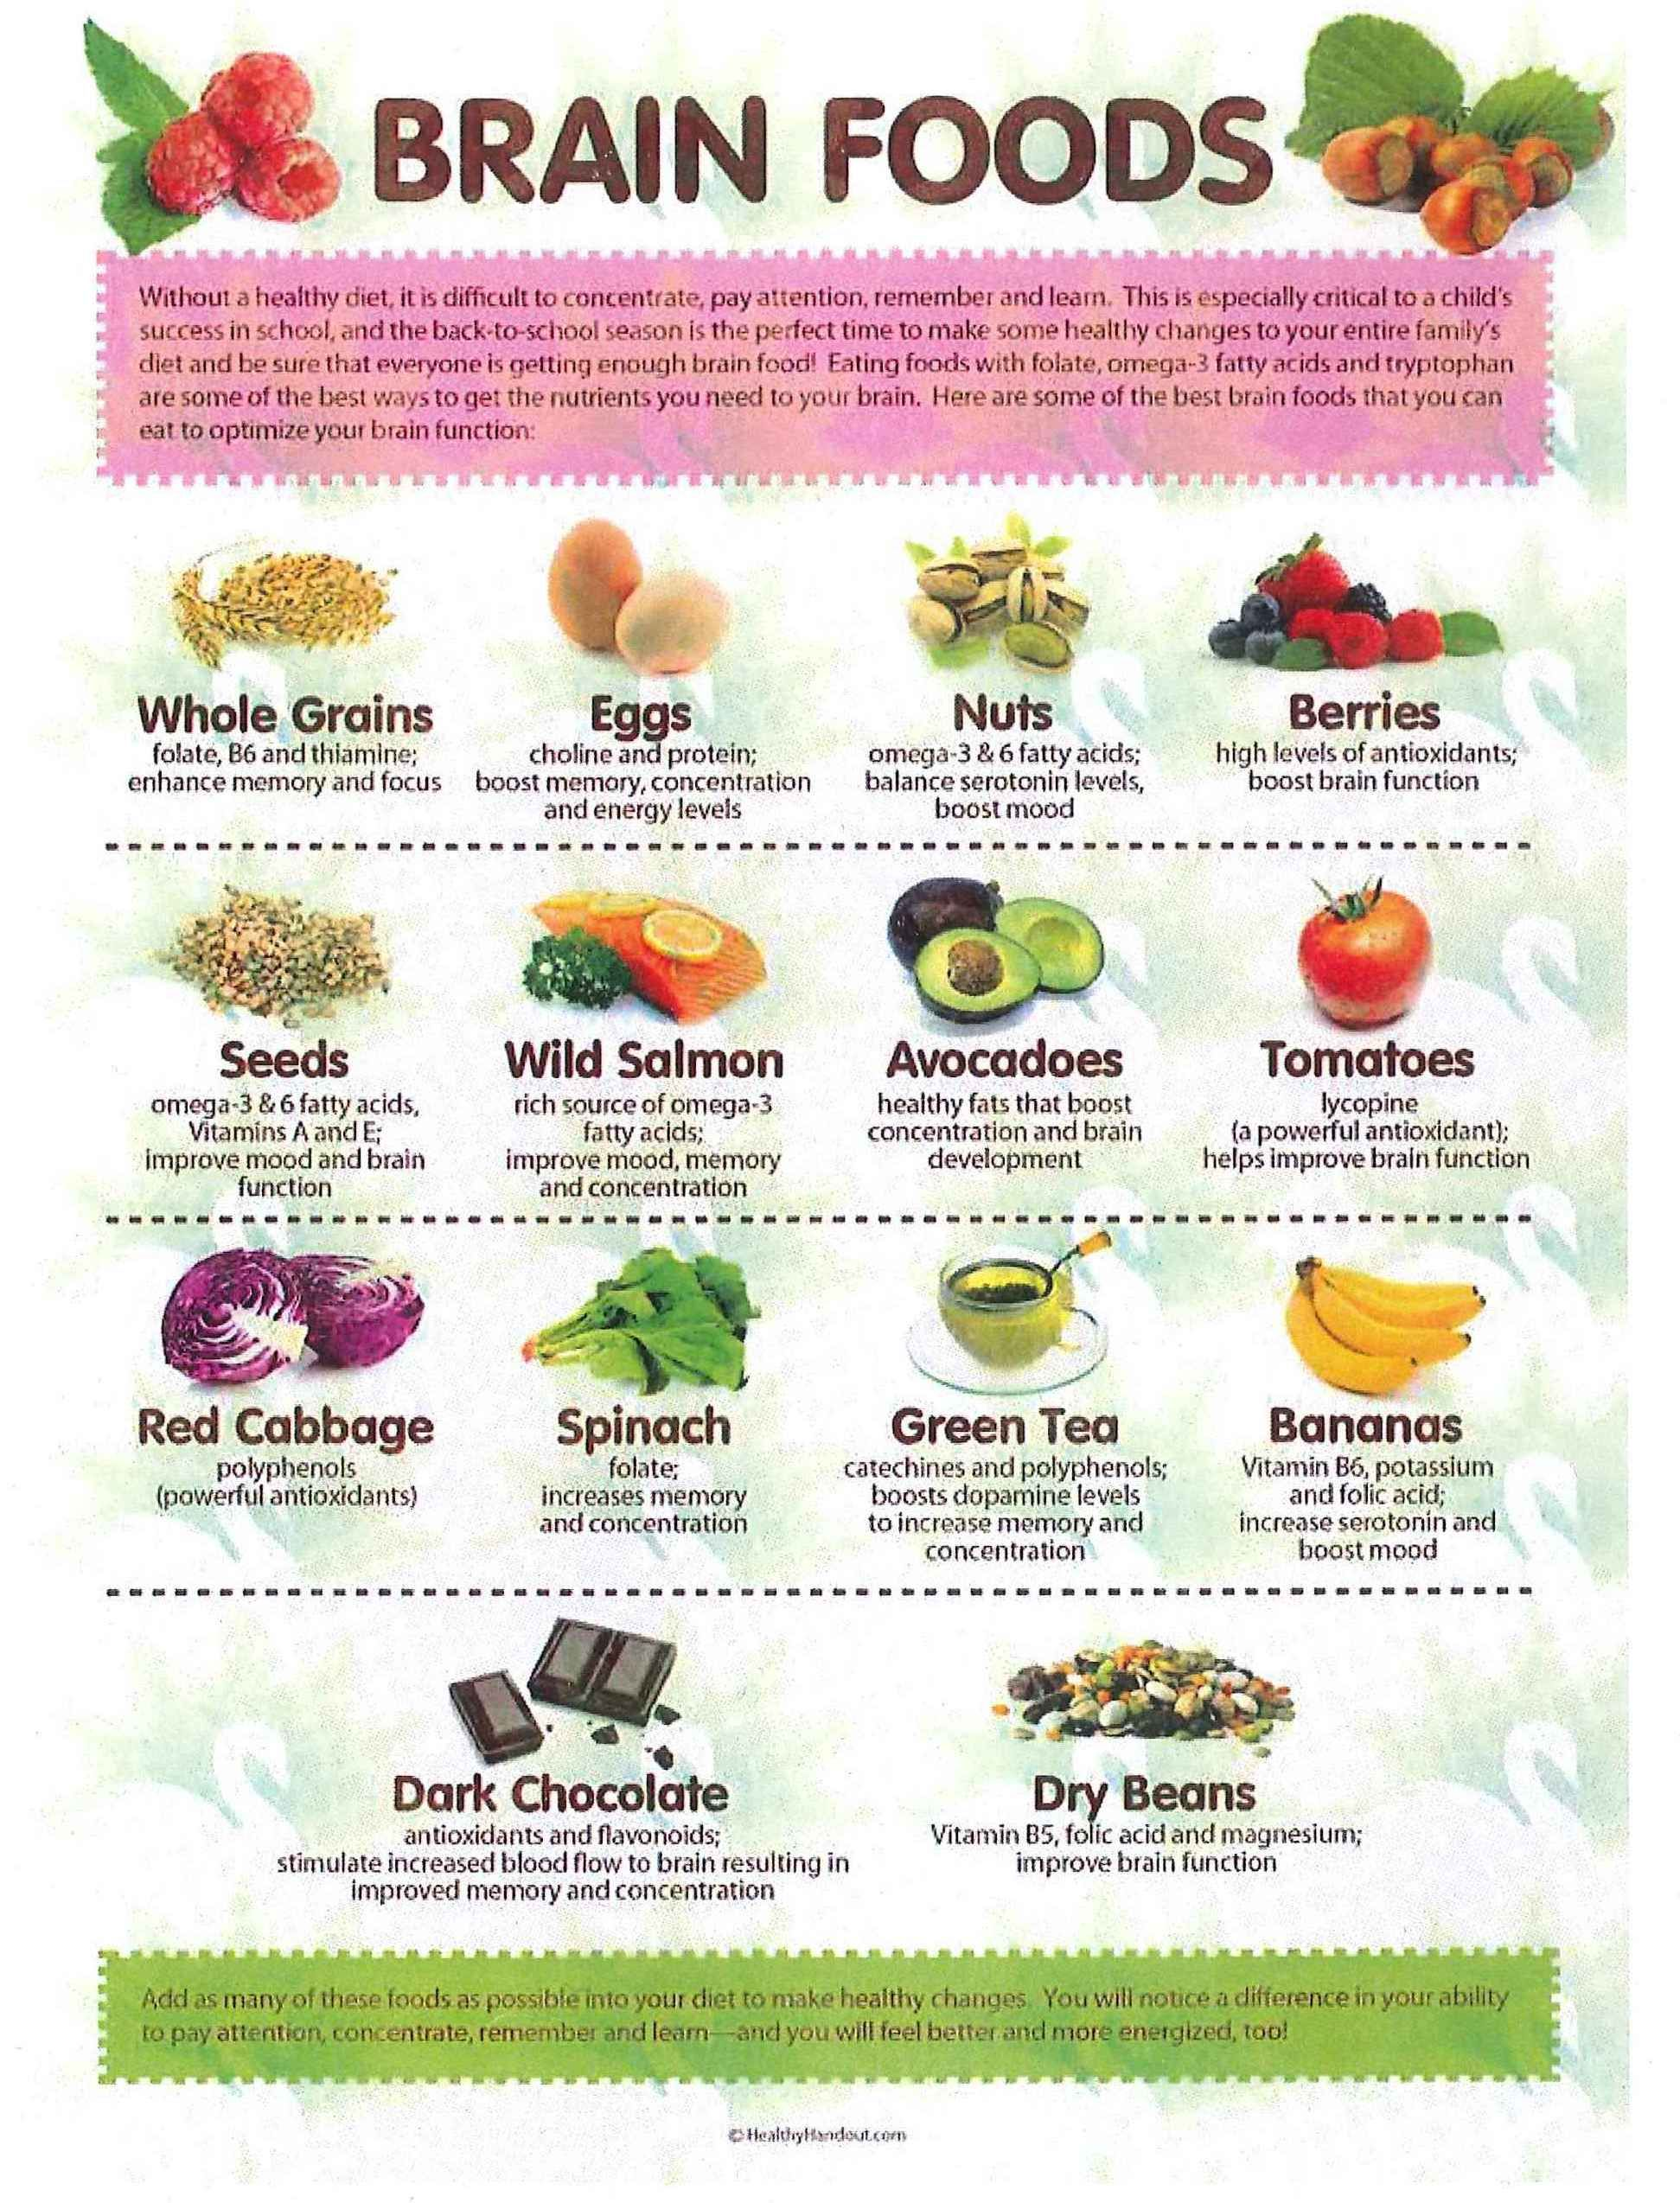 what are antioxidants give example